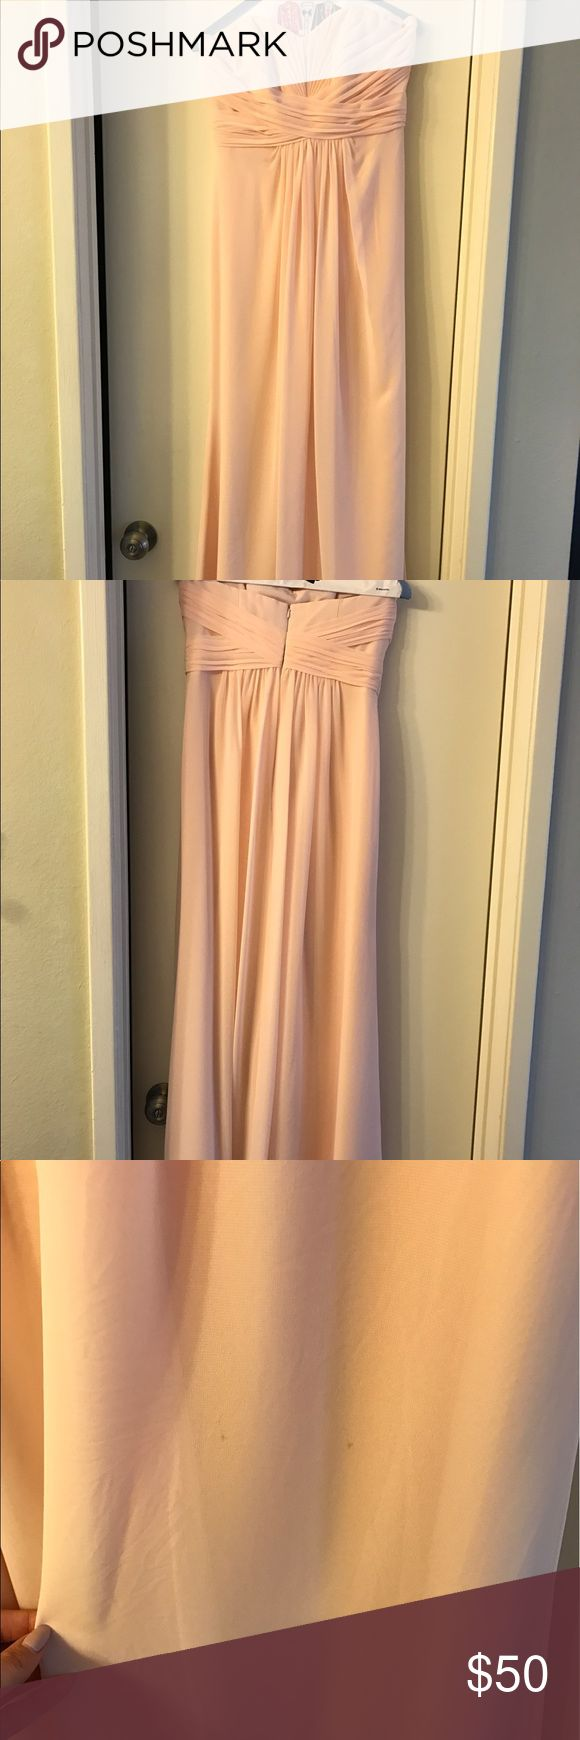 "David's Bridal Bridesmaid Dress, Blush Pink, Sz 4 Blush pink bridesmaids dress, only worn once! It has been shortened to fit someone about 5'6"" with flat shoes or shorter with heels. David's Bridal style # F15555 David's Bridal Dresses Strapless"